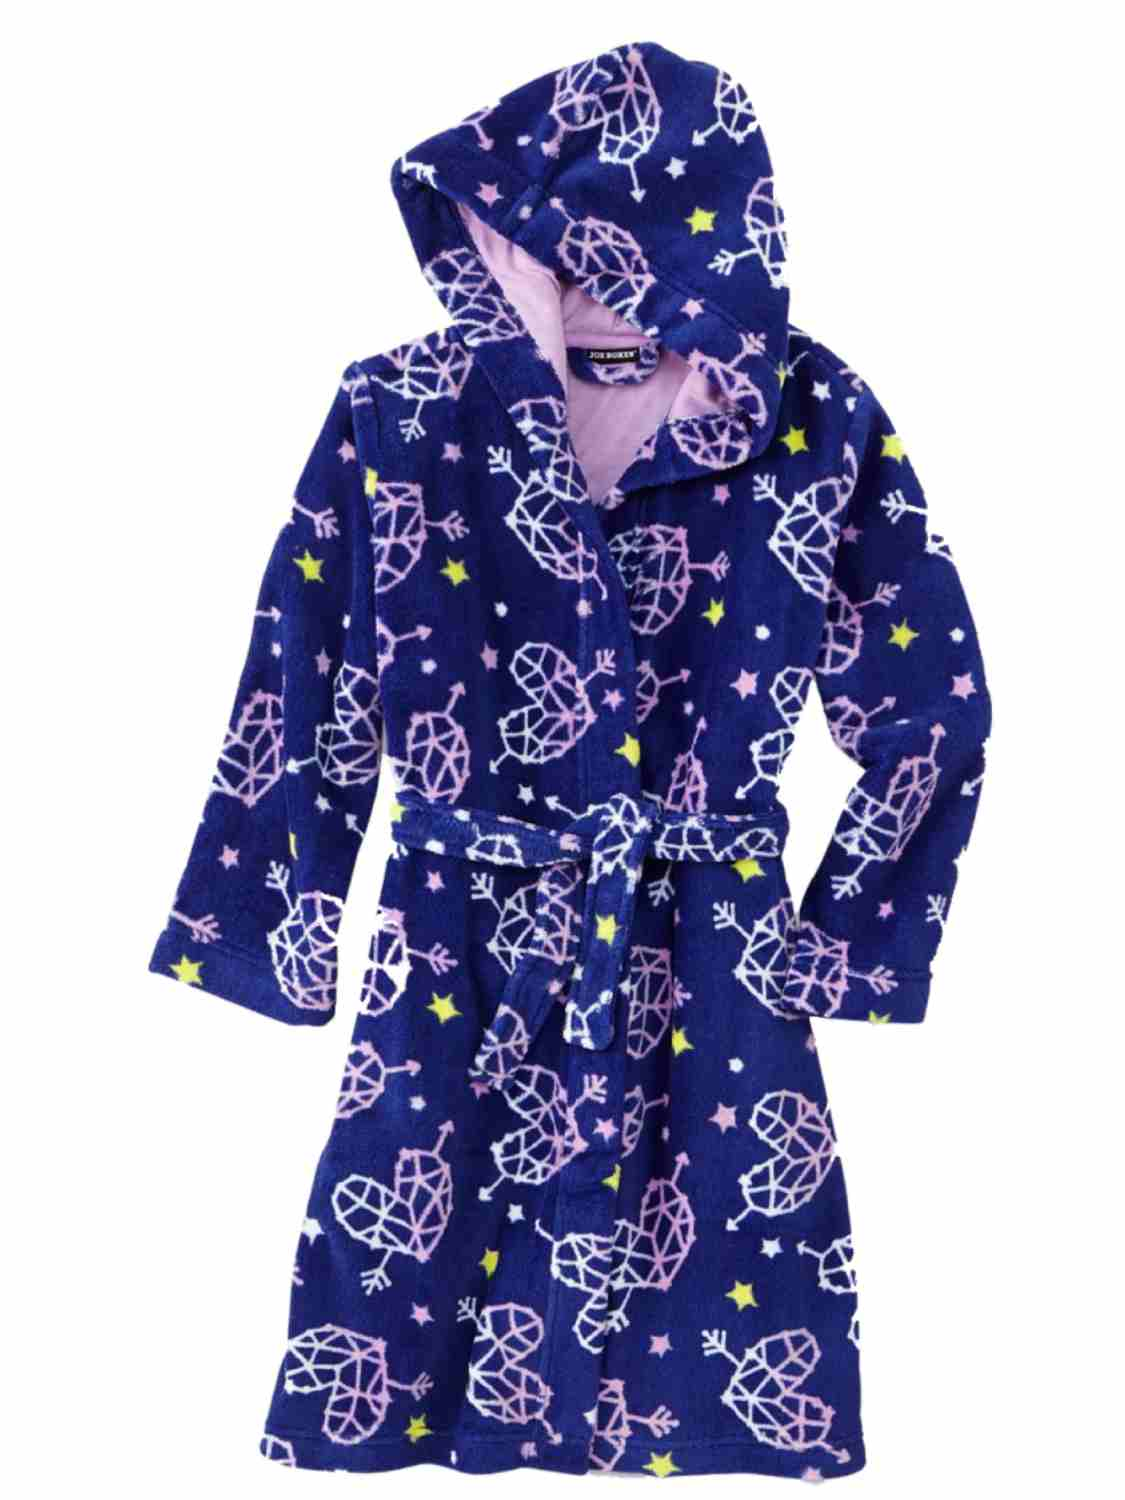 Joe Boxer Girl Blue Fleece Heart Hoodie Bath Robe House Coat Shower Wrap